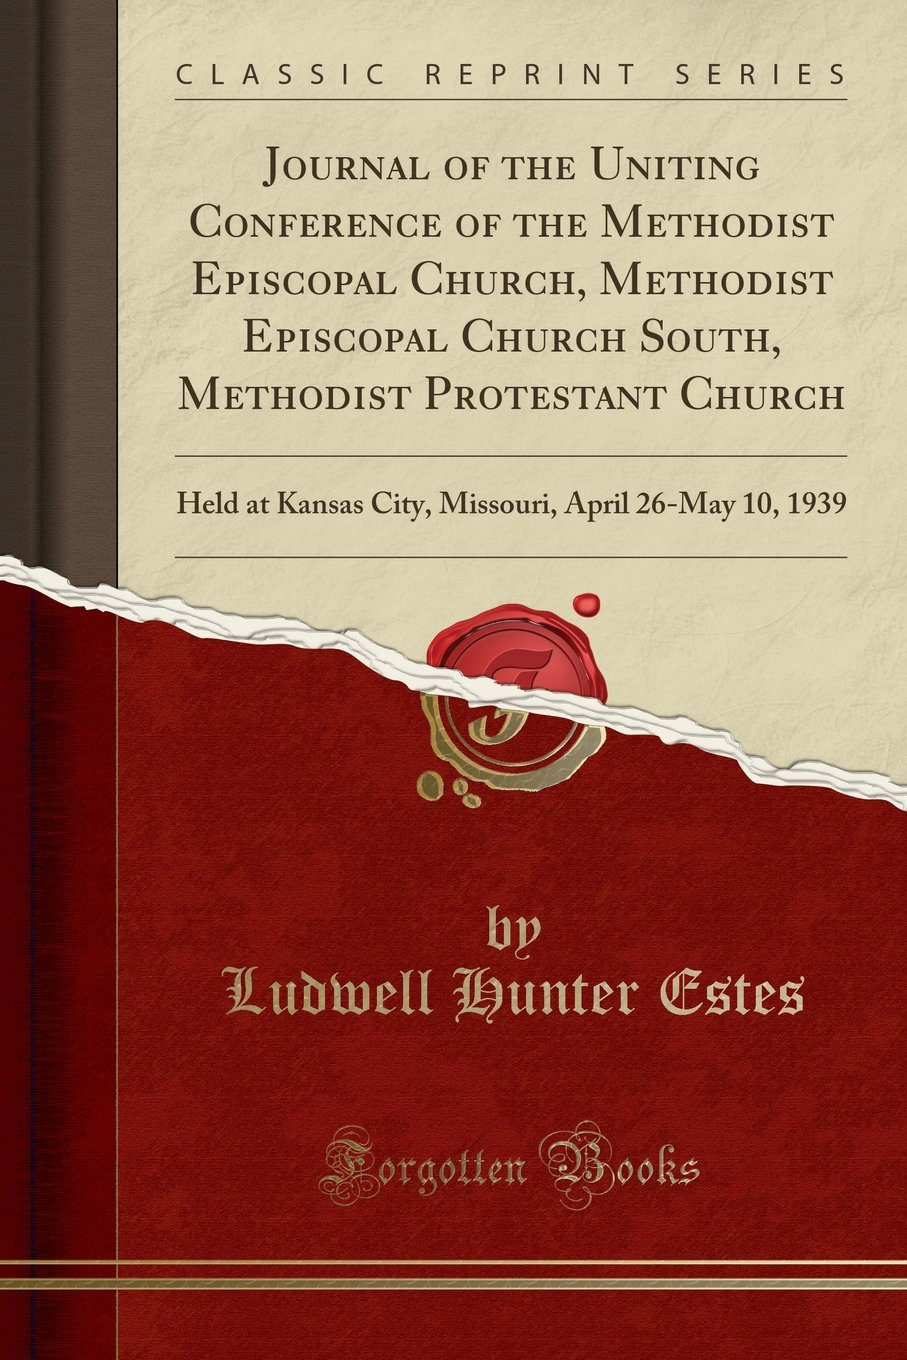 Journal of the Uniting Conference of the Methodist Episcopal Church, Methodist Episcopal Church South, Methodist Protestant Church: Held at Kansas ... April 26-May 10, 1939 (Classic Reprint) PDF